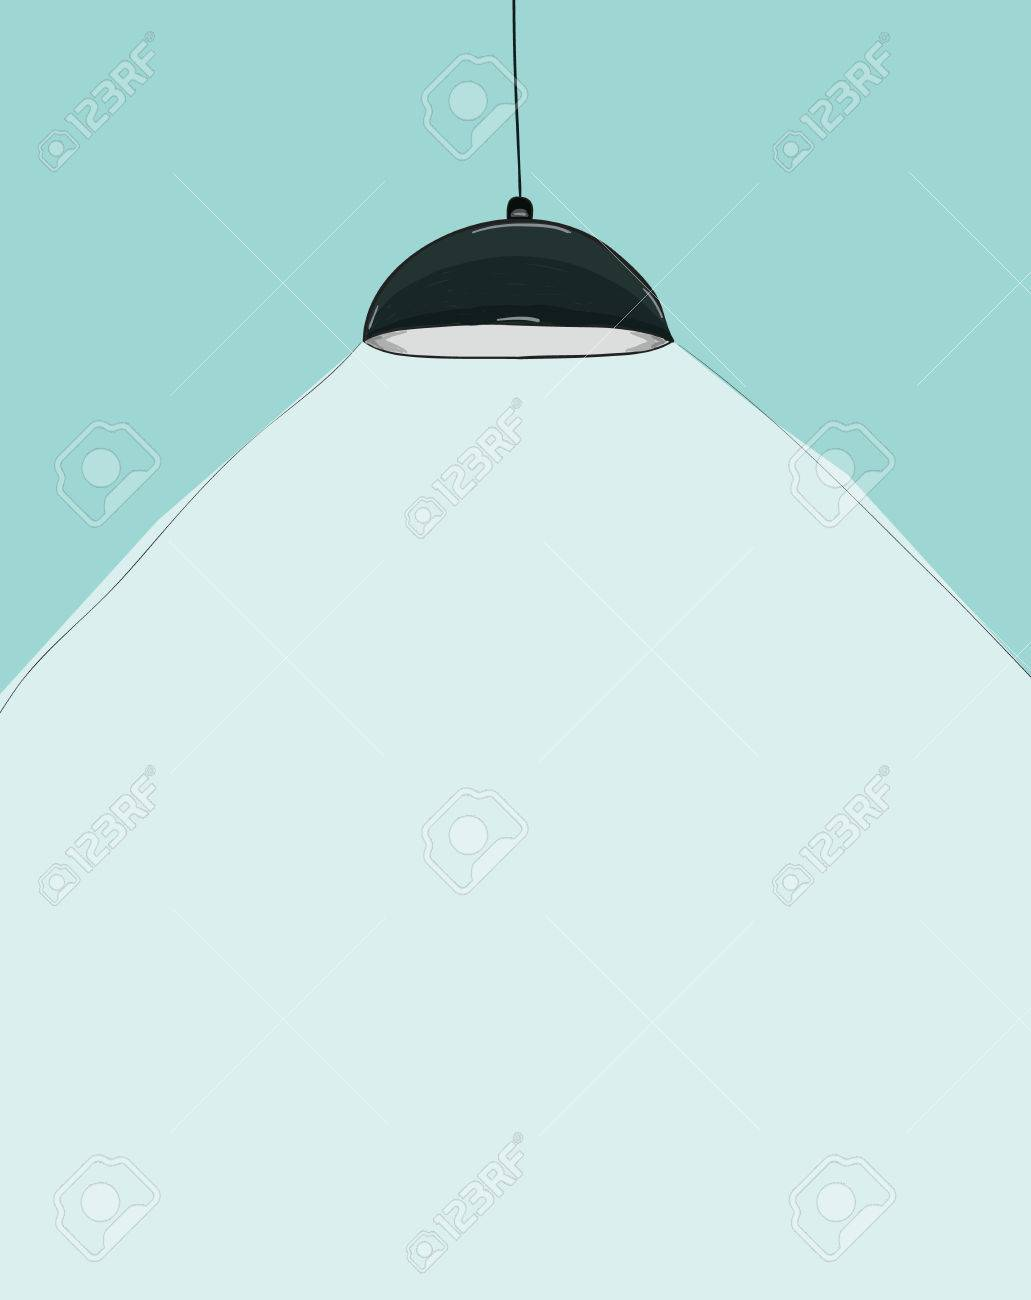 Black Ceiling Lamp Cartoon Drawing By Hand Vector Stock